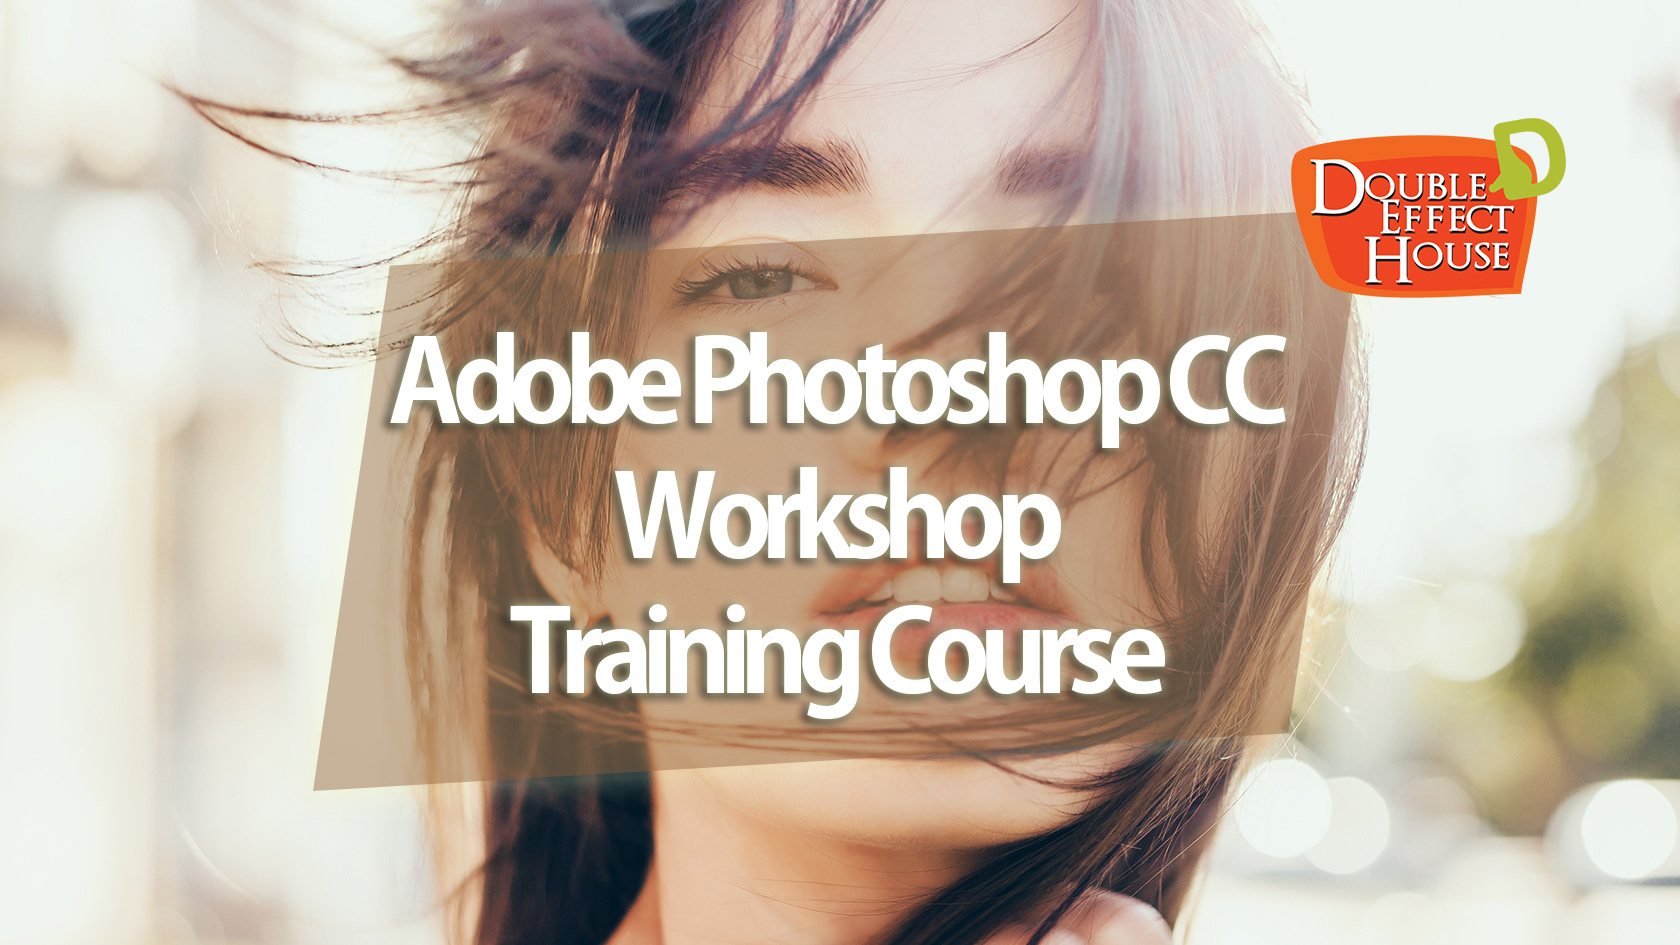 Adobe Photoshop CC Workshop Training Course